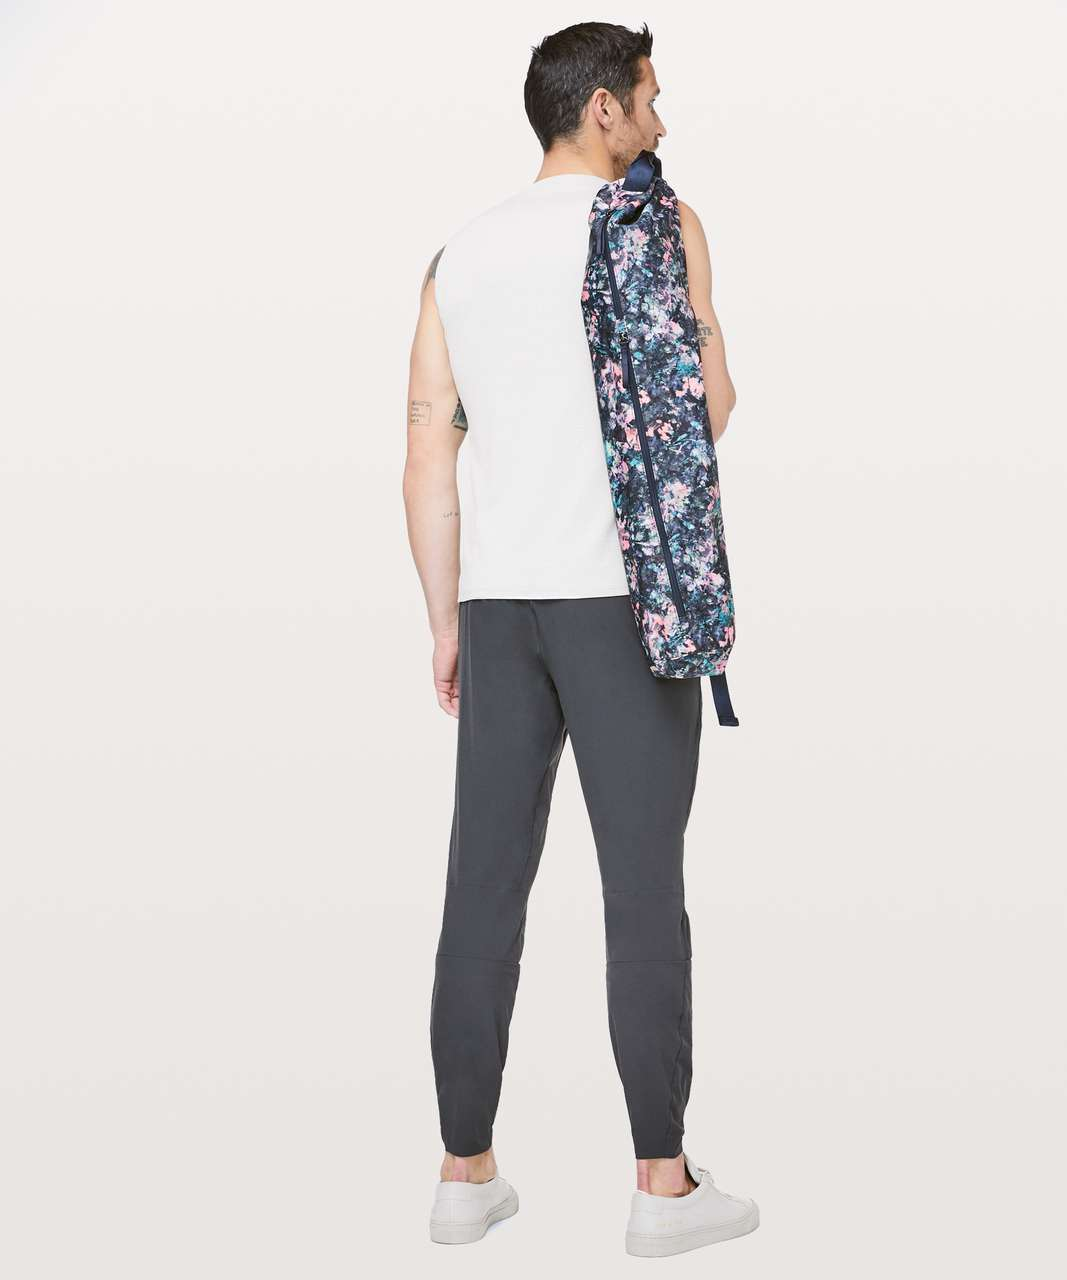 Lululemon Get Rolling Yoga Mat Bag *17L - Dappled Daze Multi